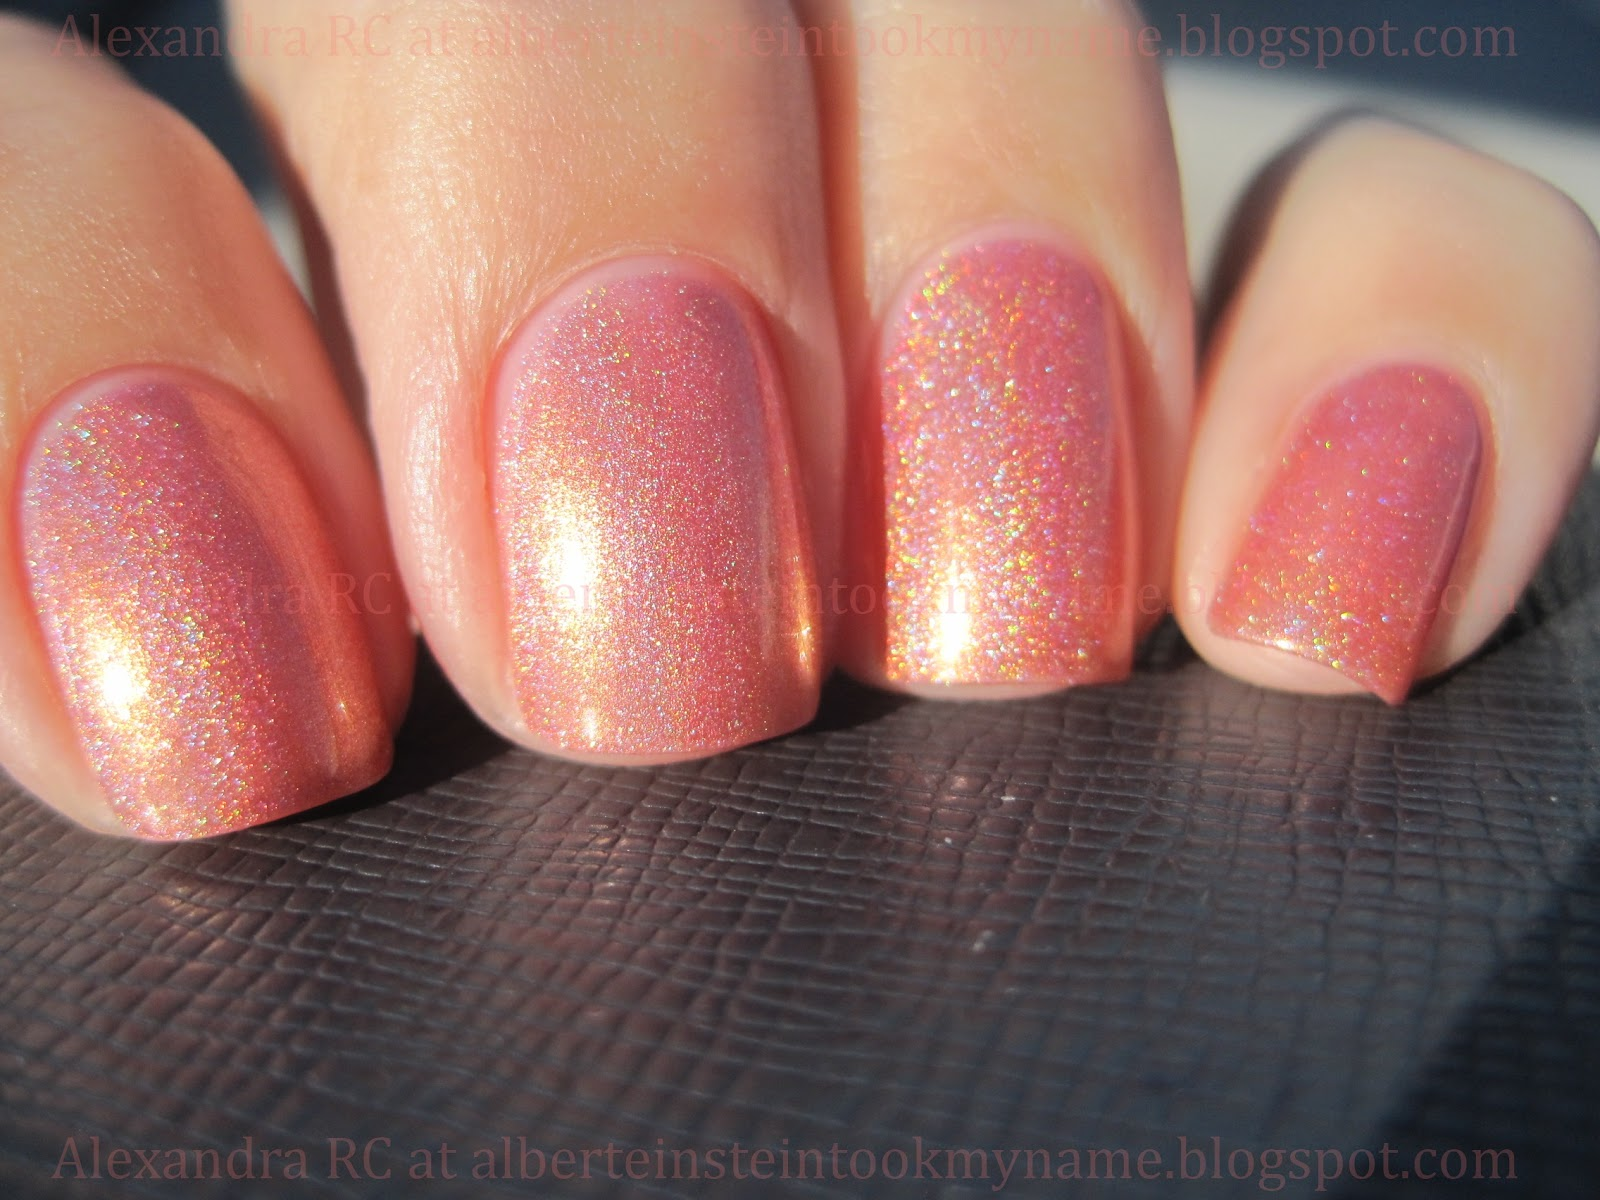 create the perfect manicure at home with coral coast, a glittering coral peach nail polish, nail color & nail lacquer that looks as captivating as the coast.